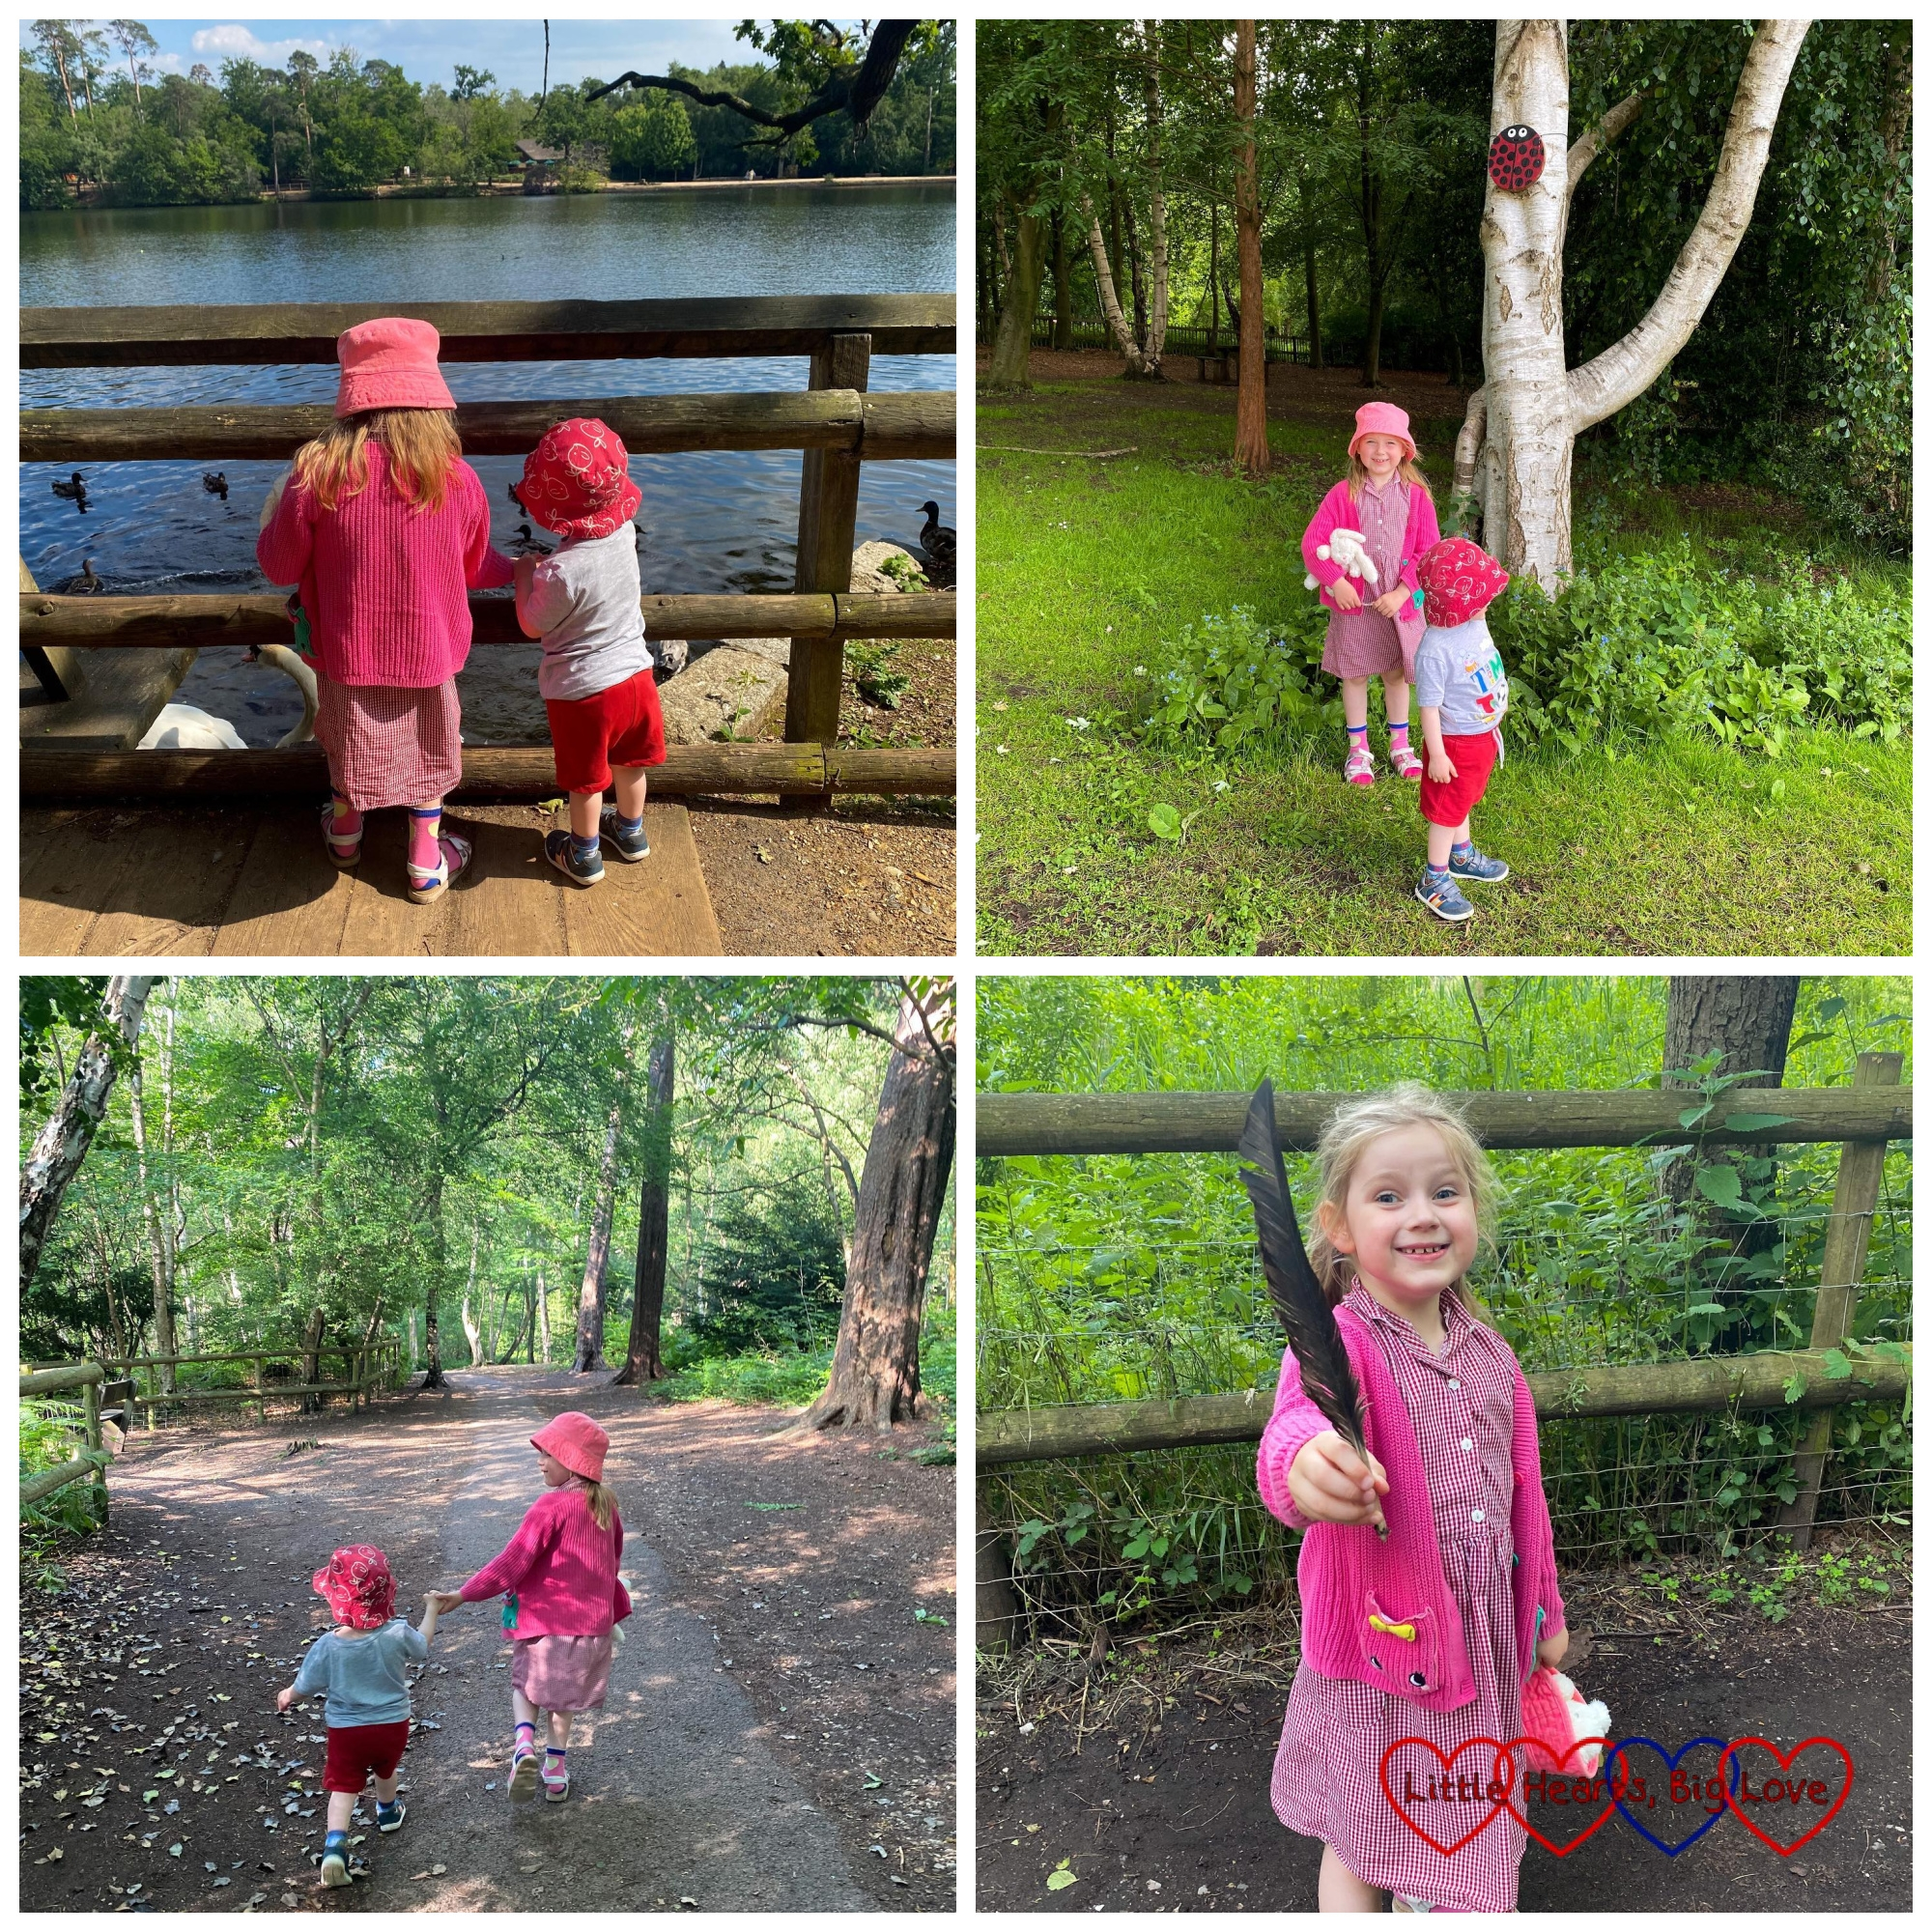 Sophie and Thomas feeding the ducks at Black Park; Sophie and Thomas standing in front of a birch tree with a giant wooden ladybird above them; Sophie and Thomas walking hand-in-hand through the woods; Sophie holding a large black feather